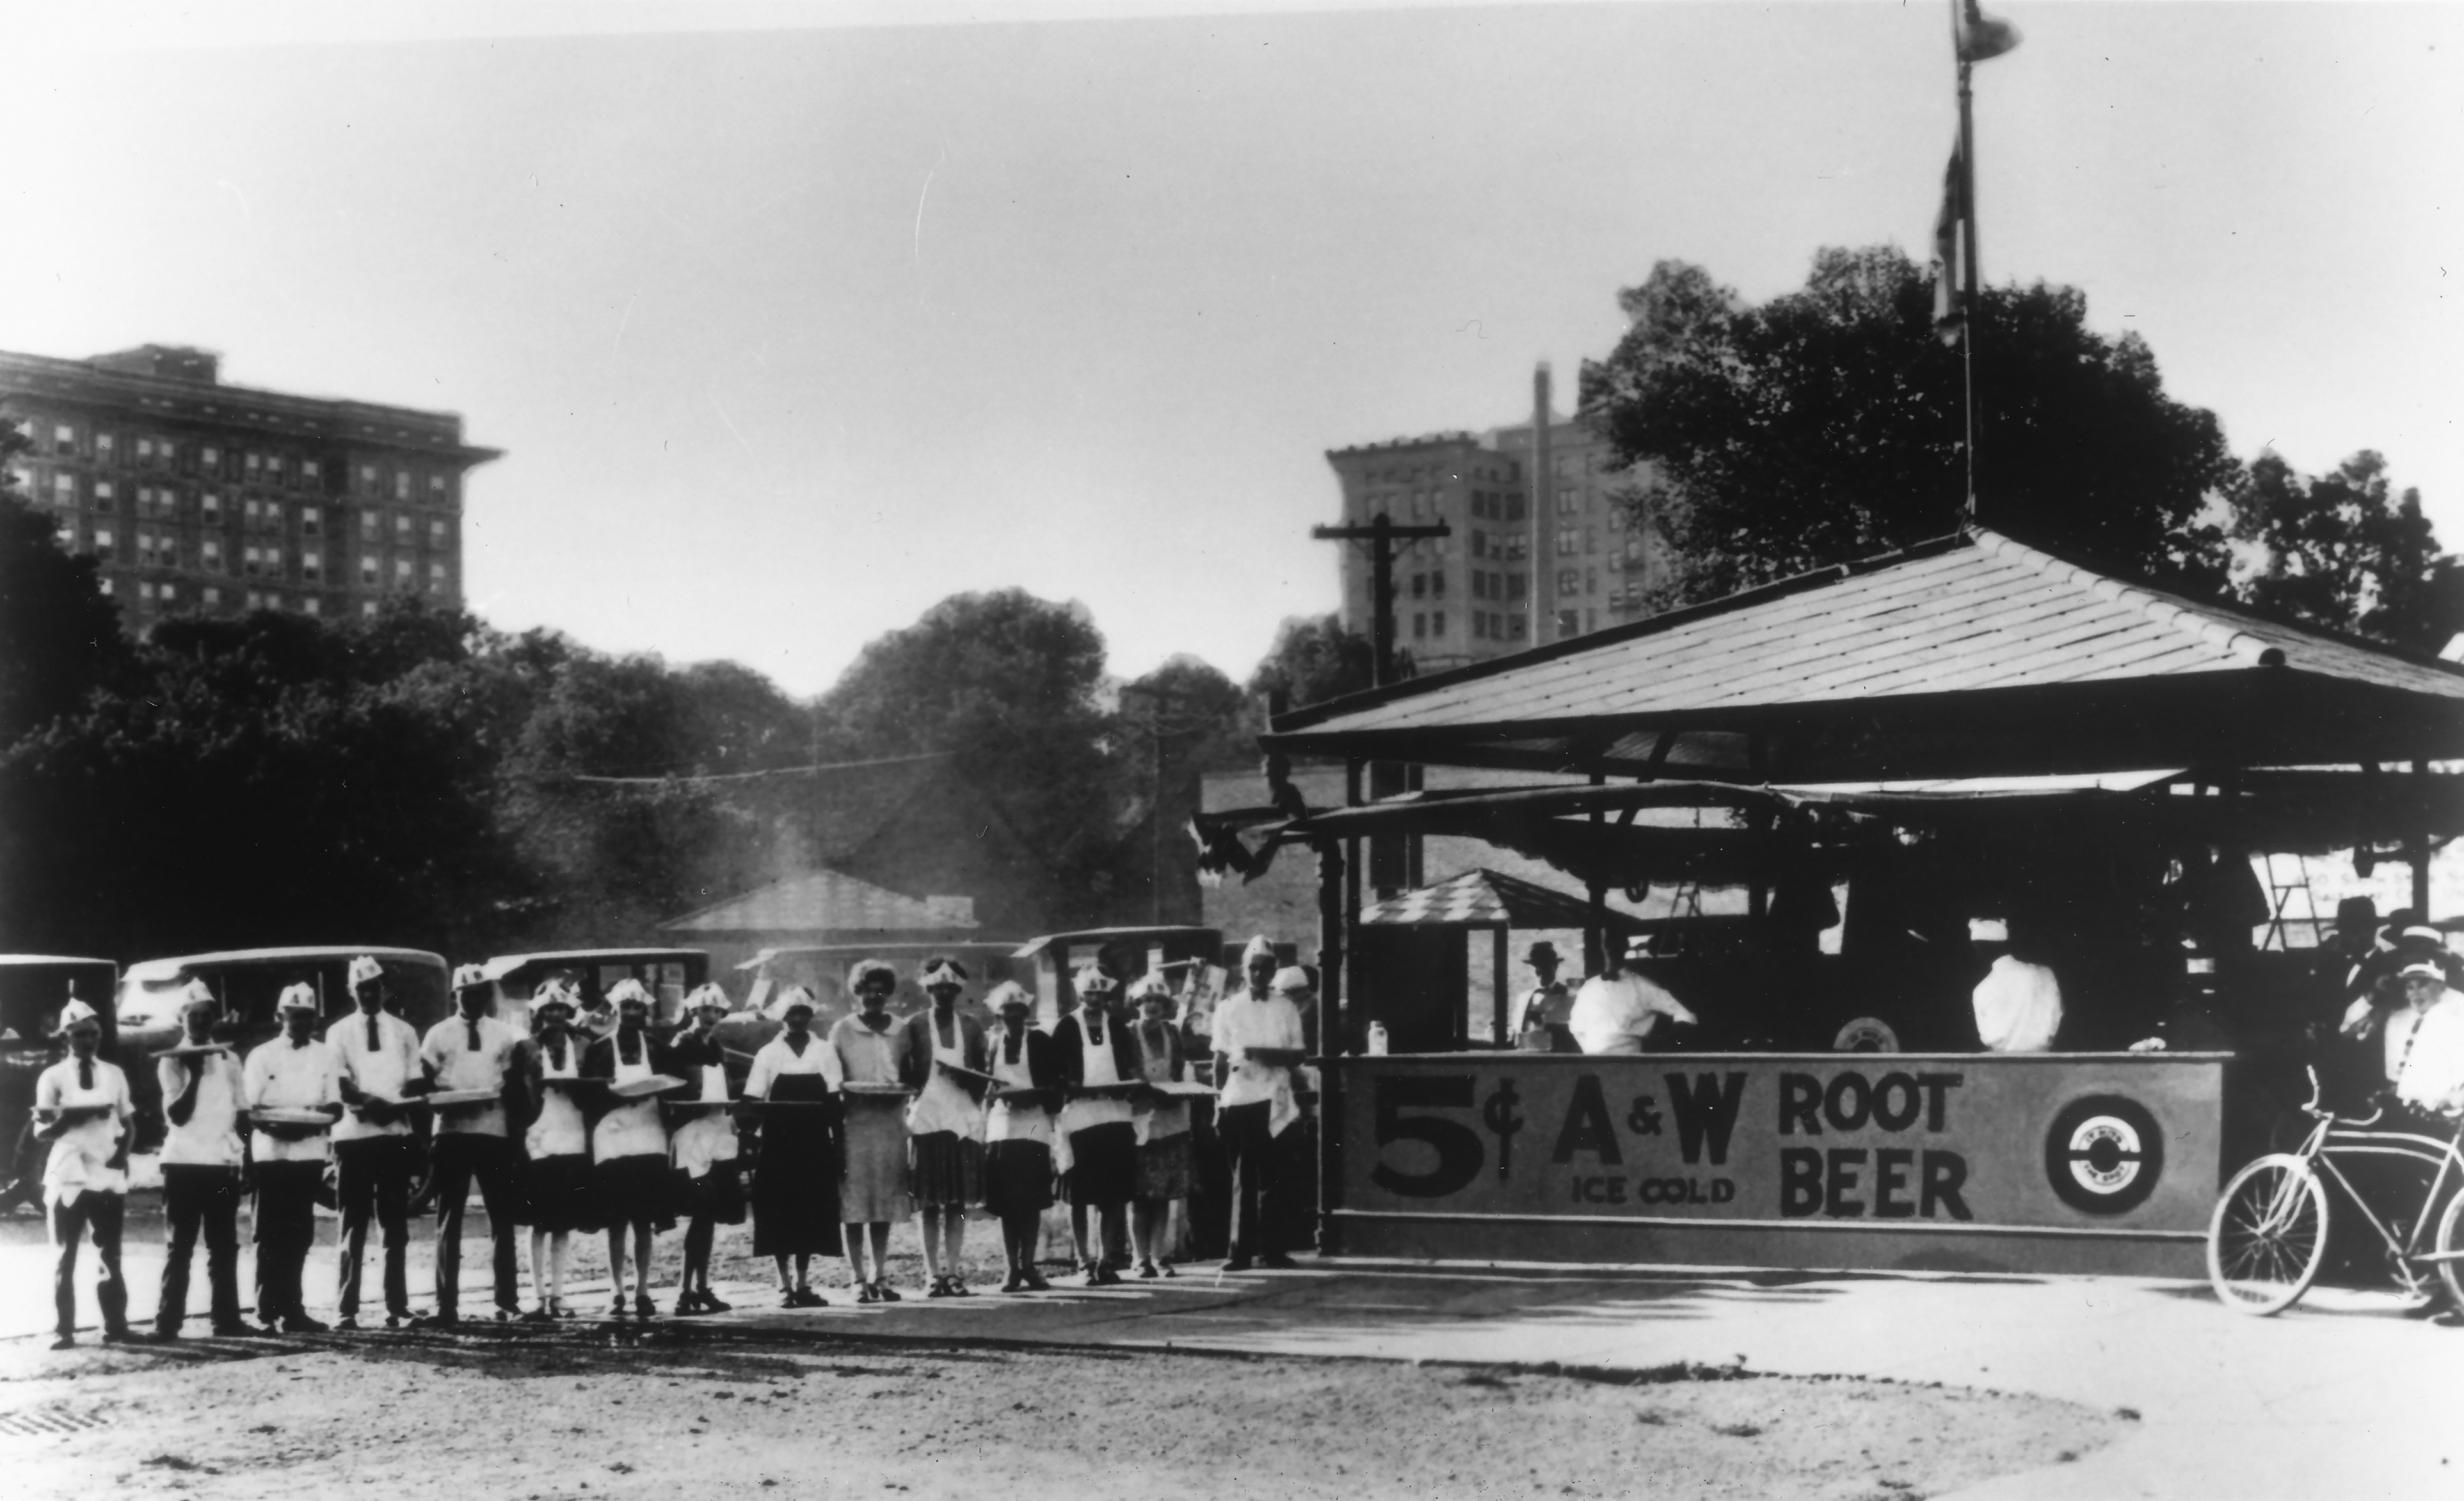 Root Beer Stand, State St. in Salt Lake City 1926